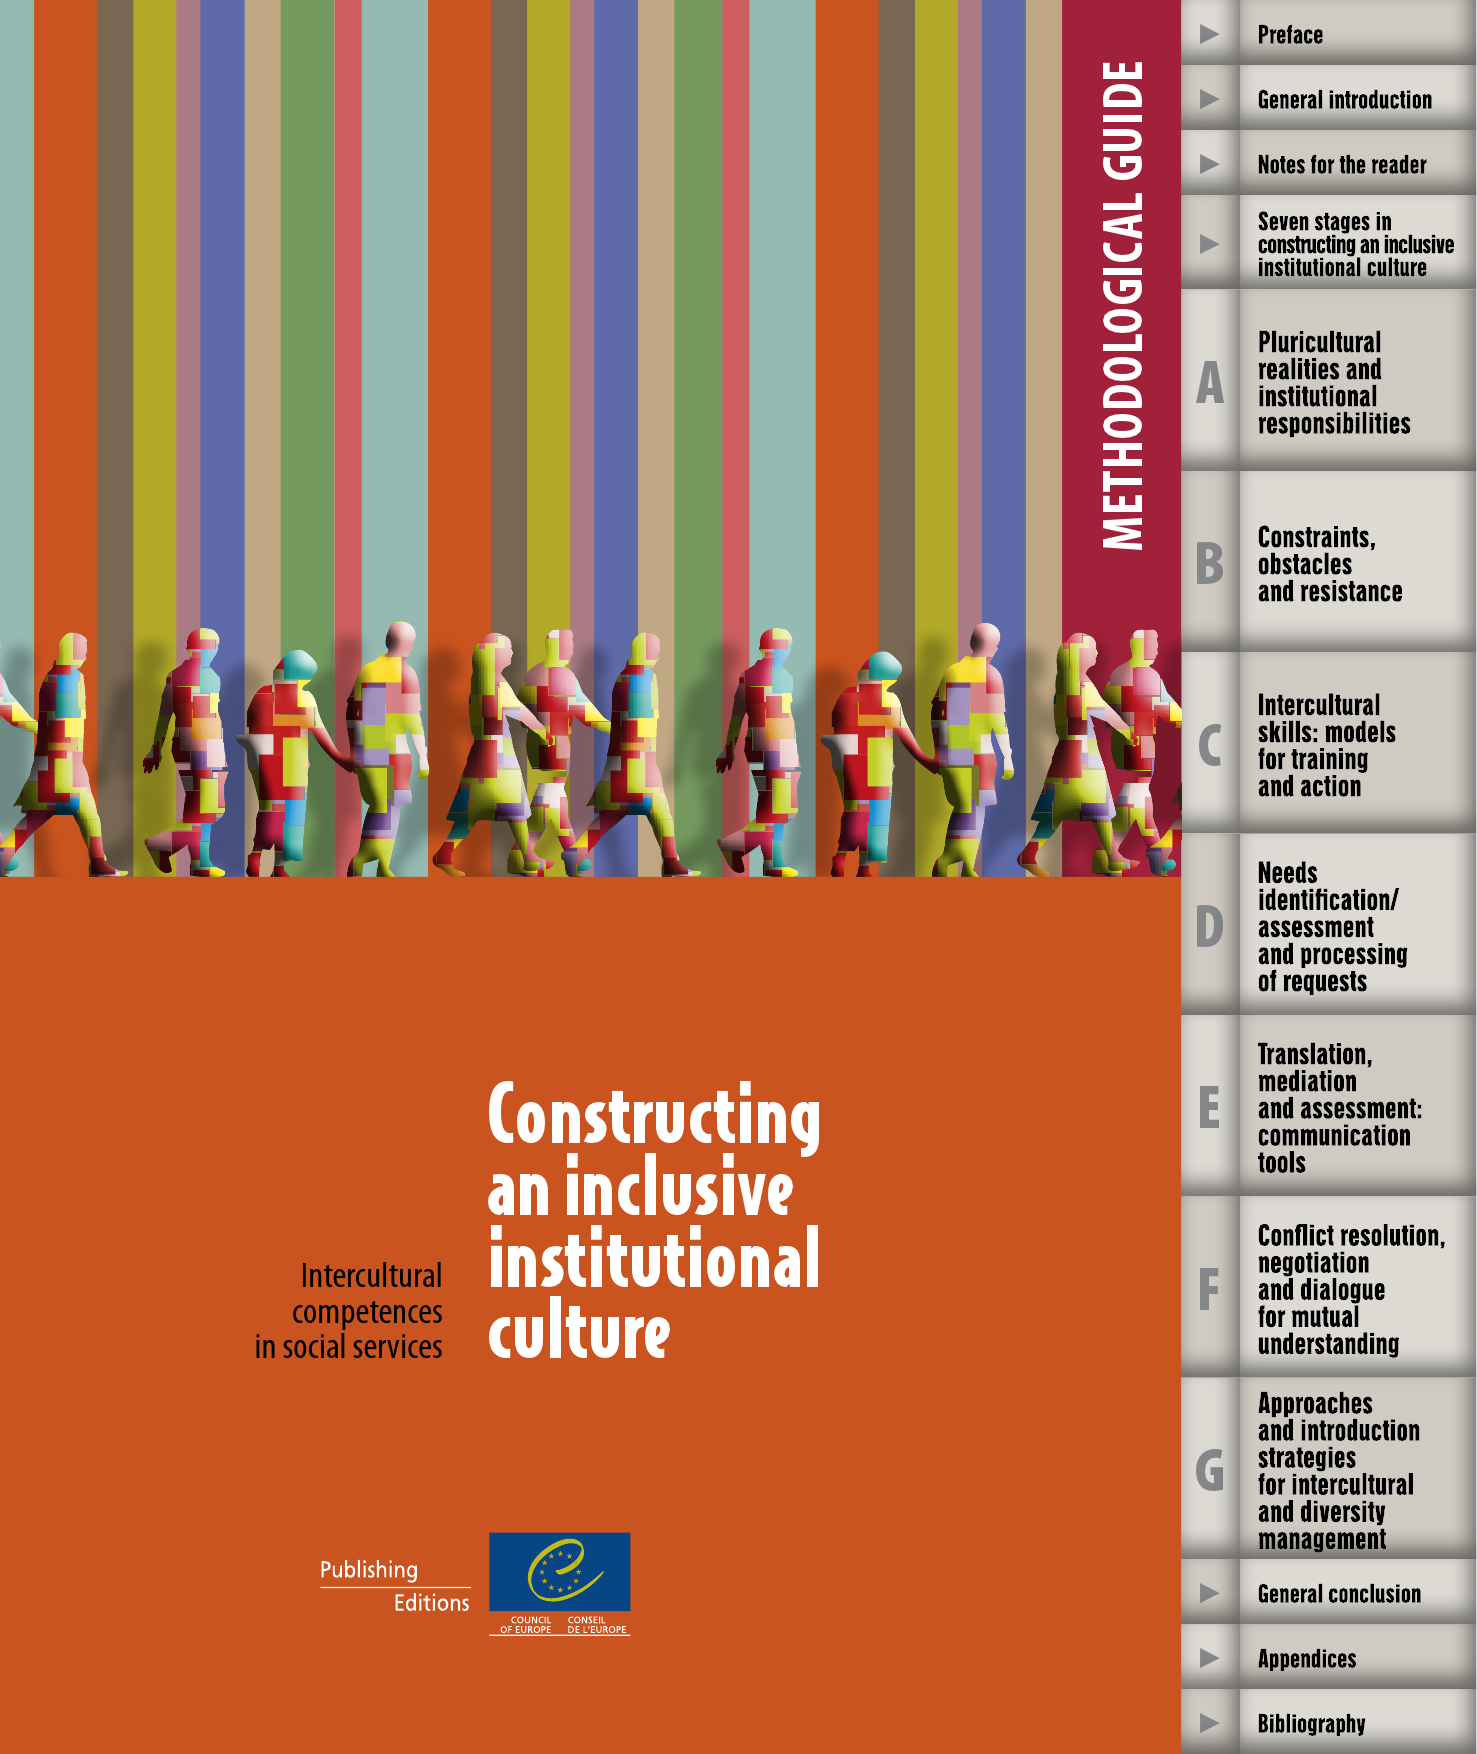 Constructing an inclusive institutional culture - Intercultural competences in cultural services